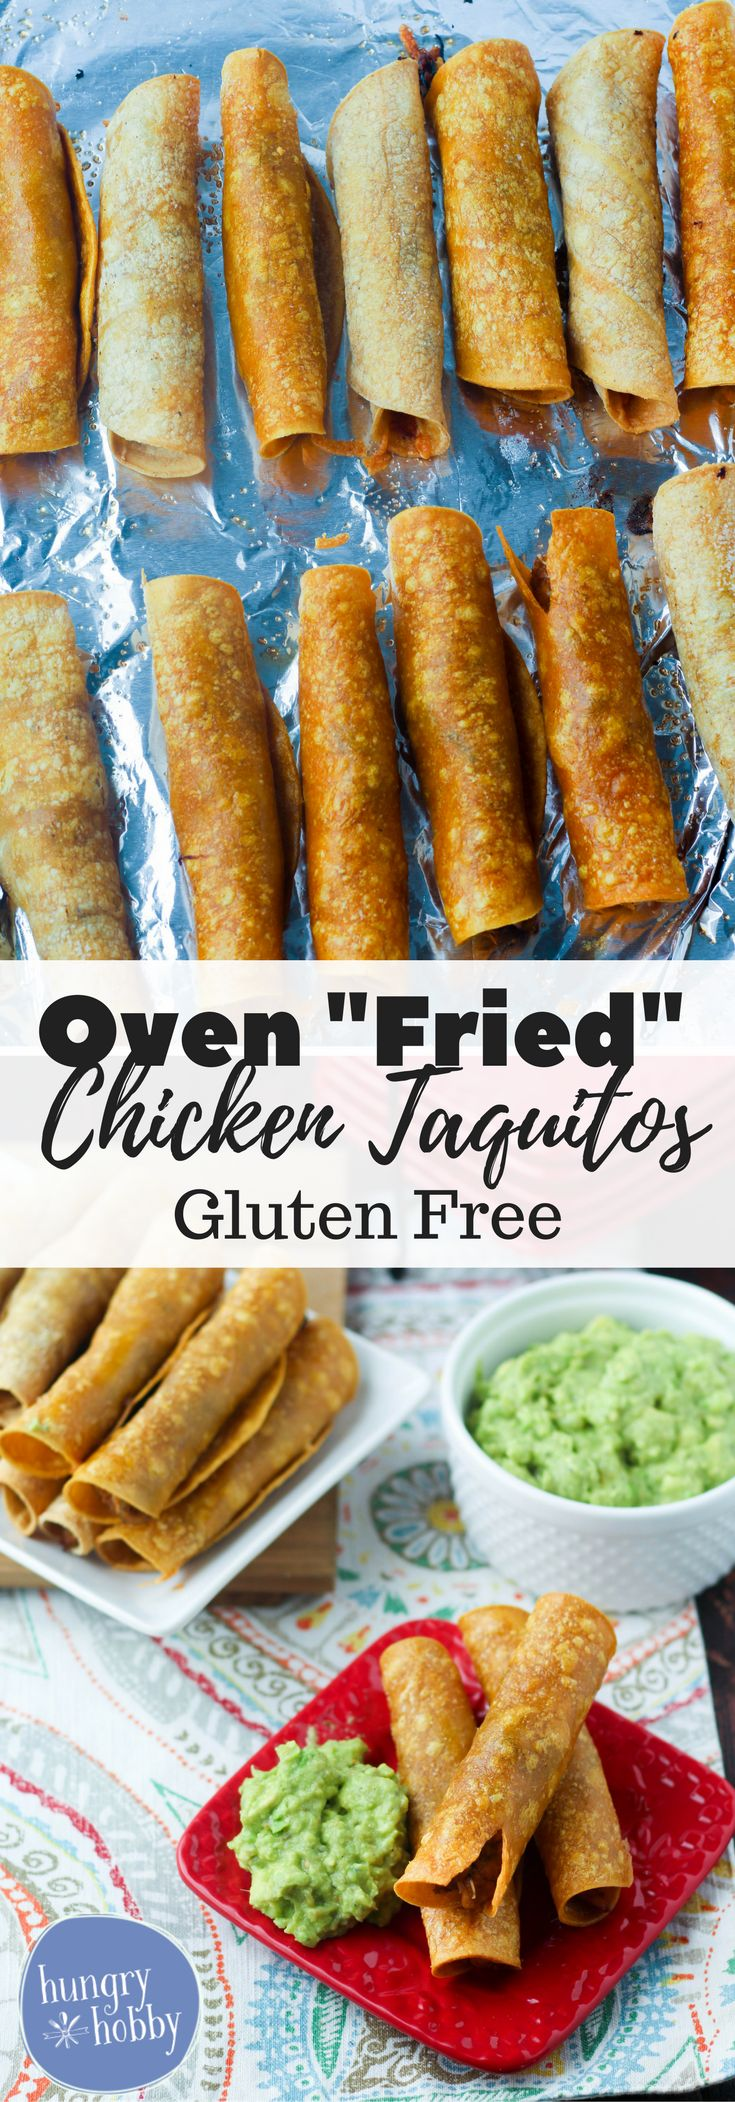 Oven Fried Chicken Taquitos Mexican Food Appetizersmexican Finger  Foodshealthy